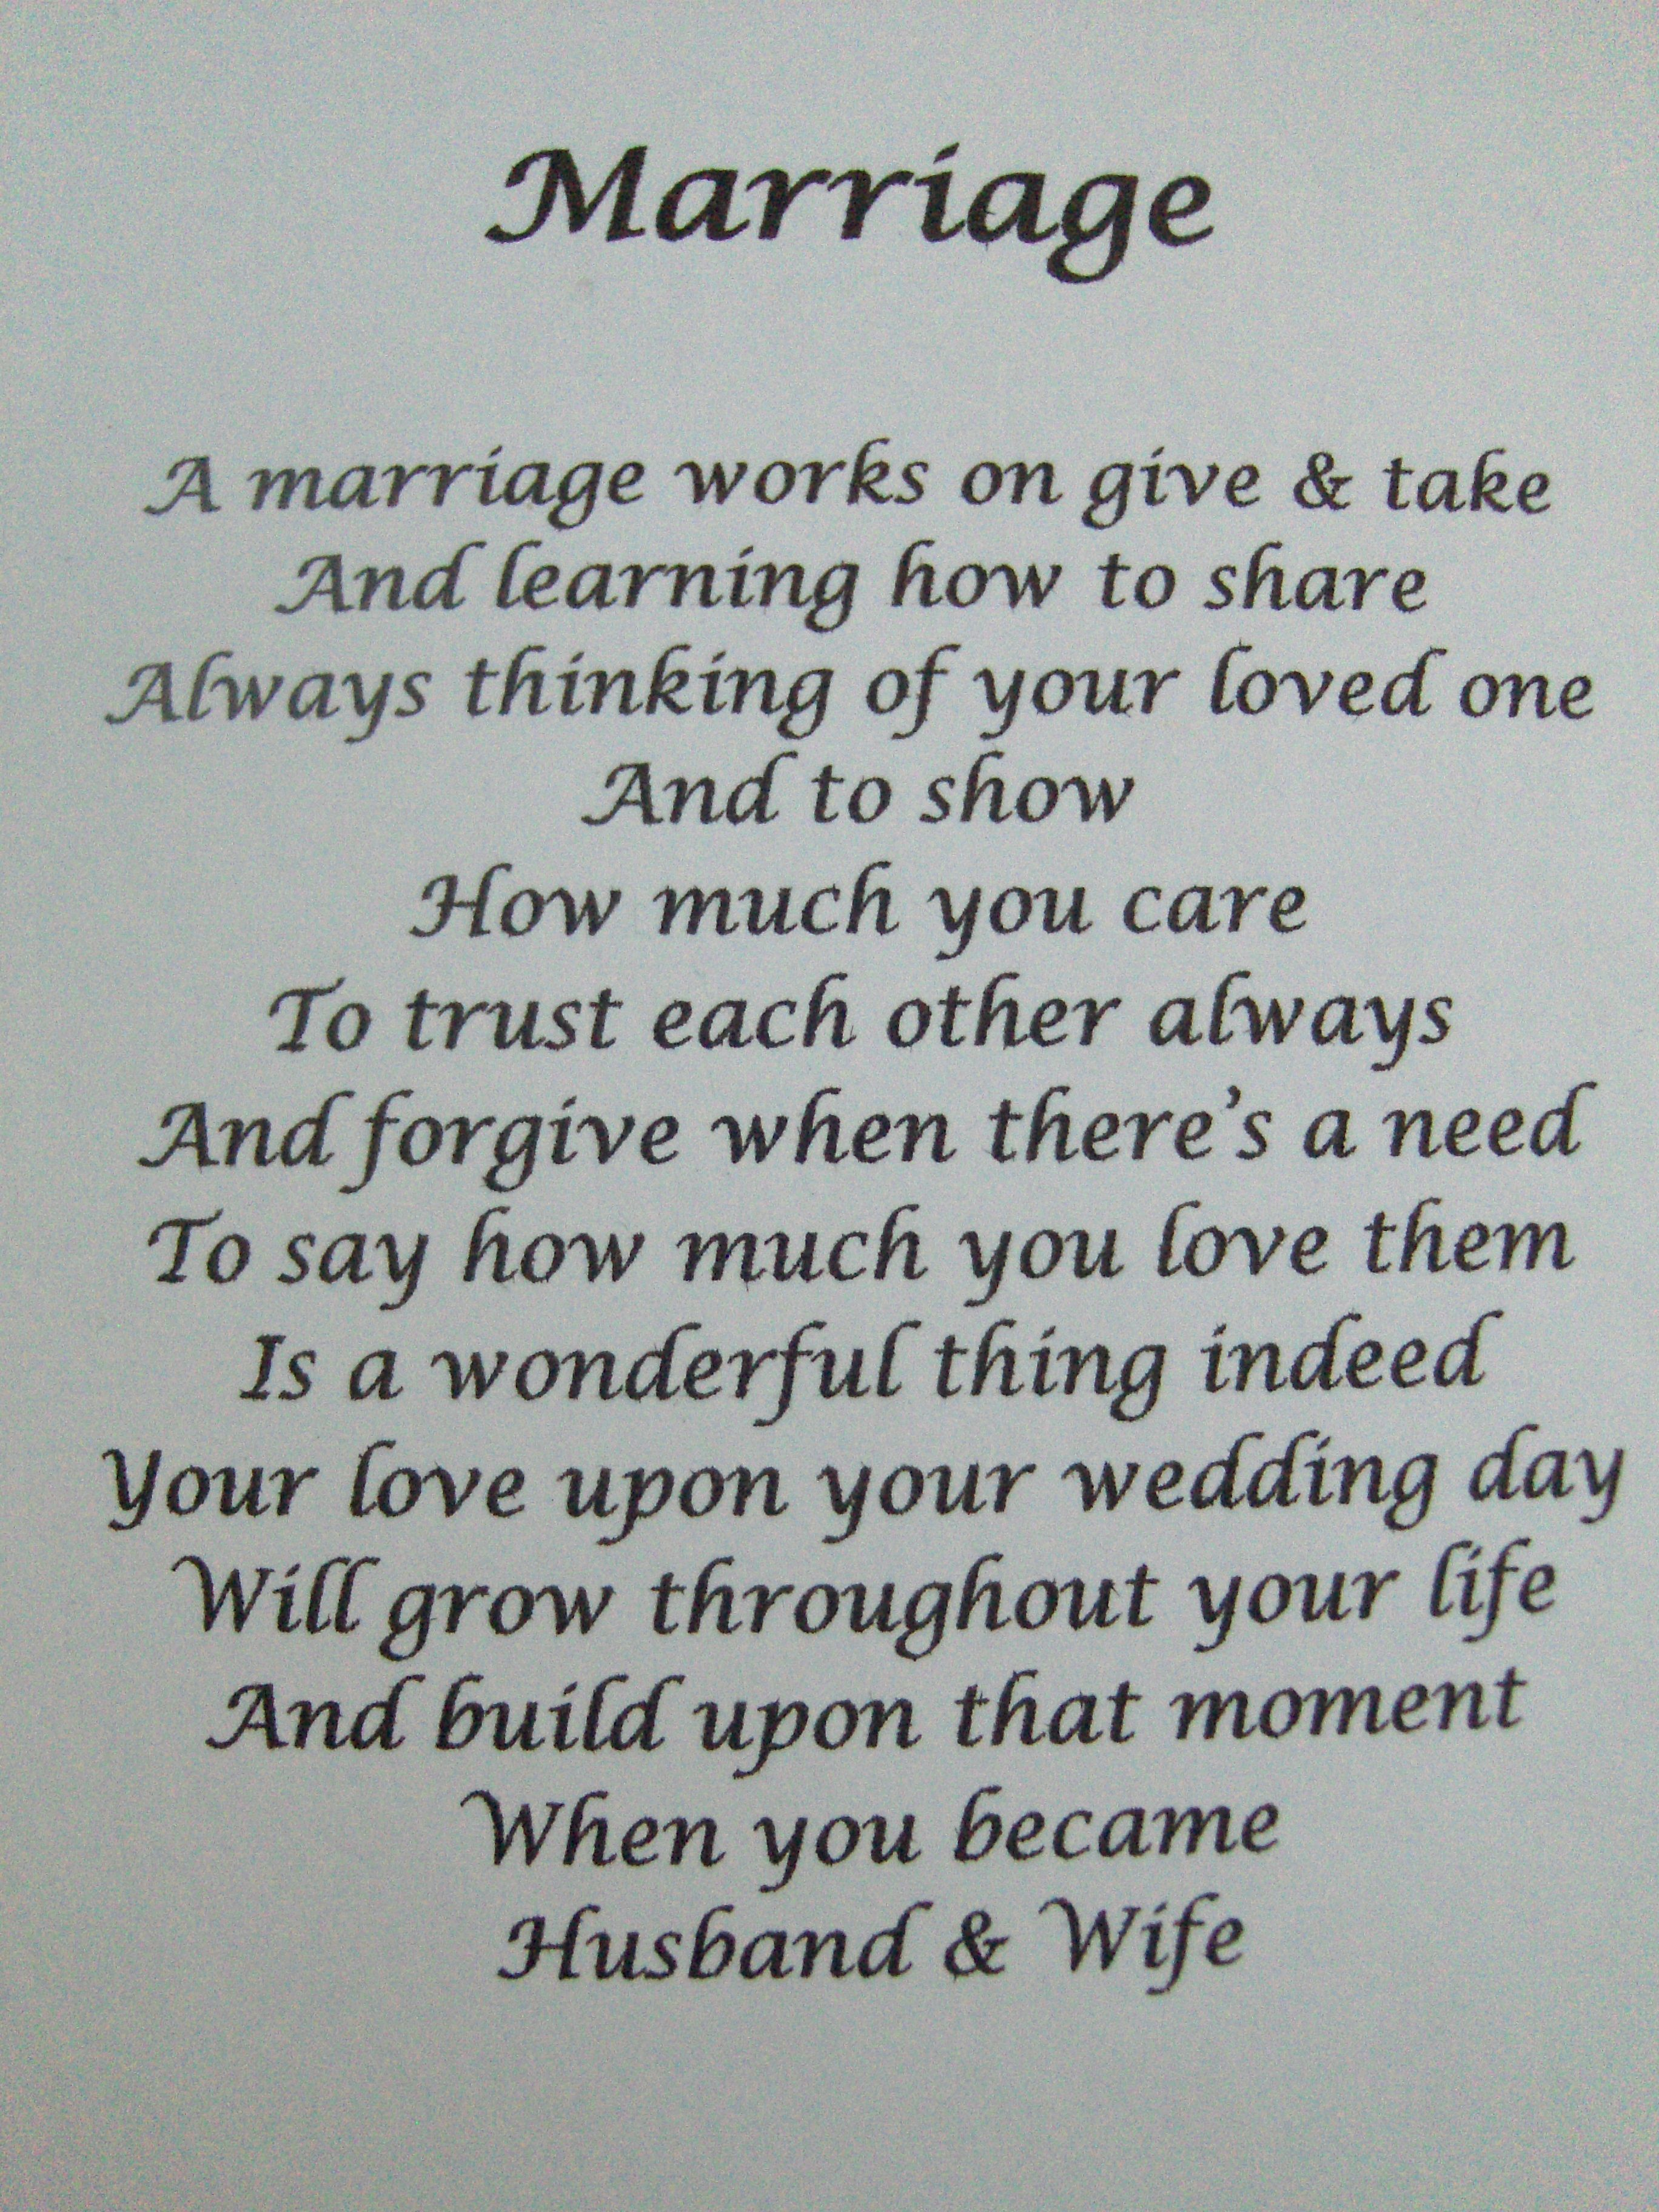 Marriage Poem Inspirational In 2019 Pinterest Marriage